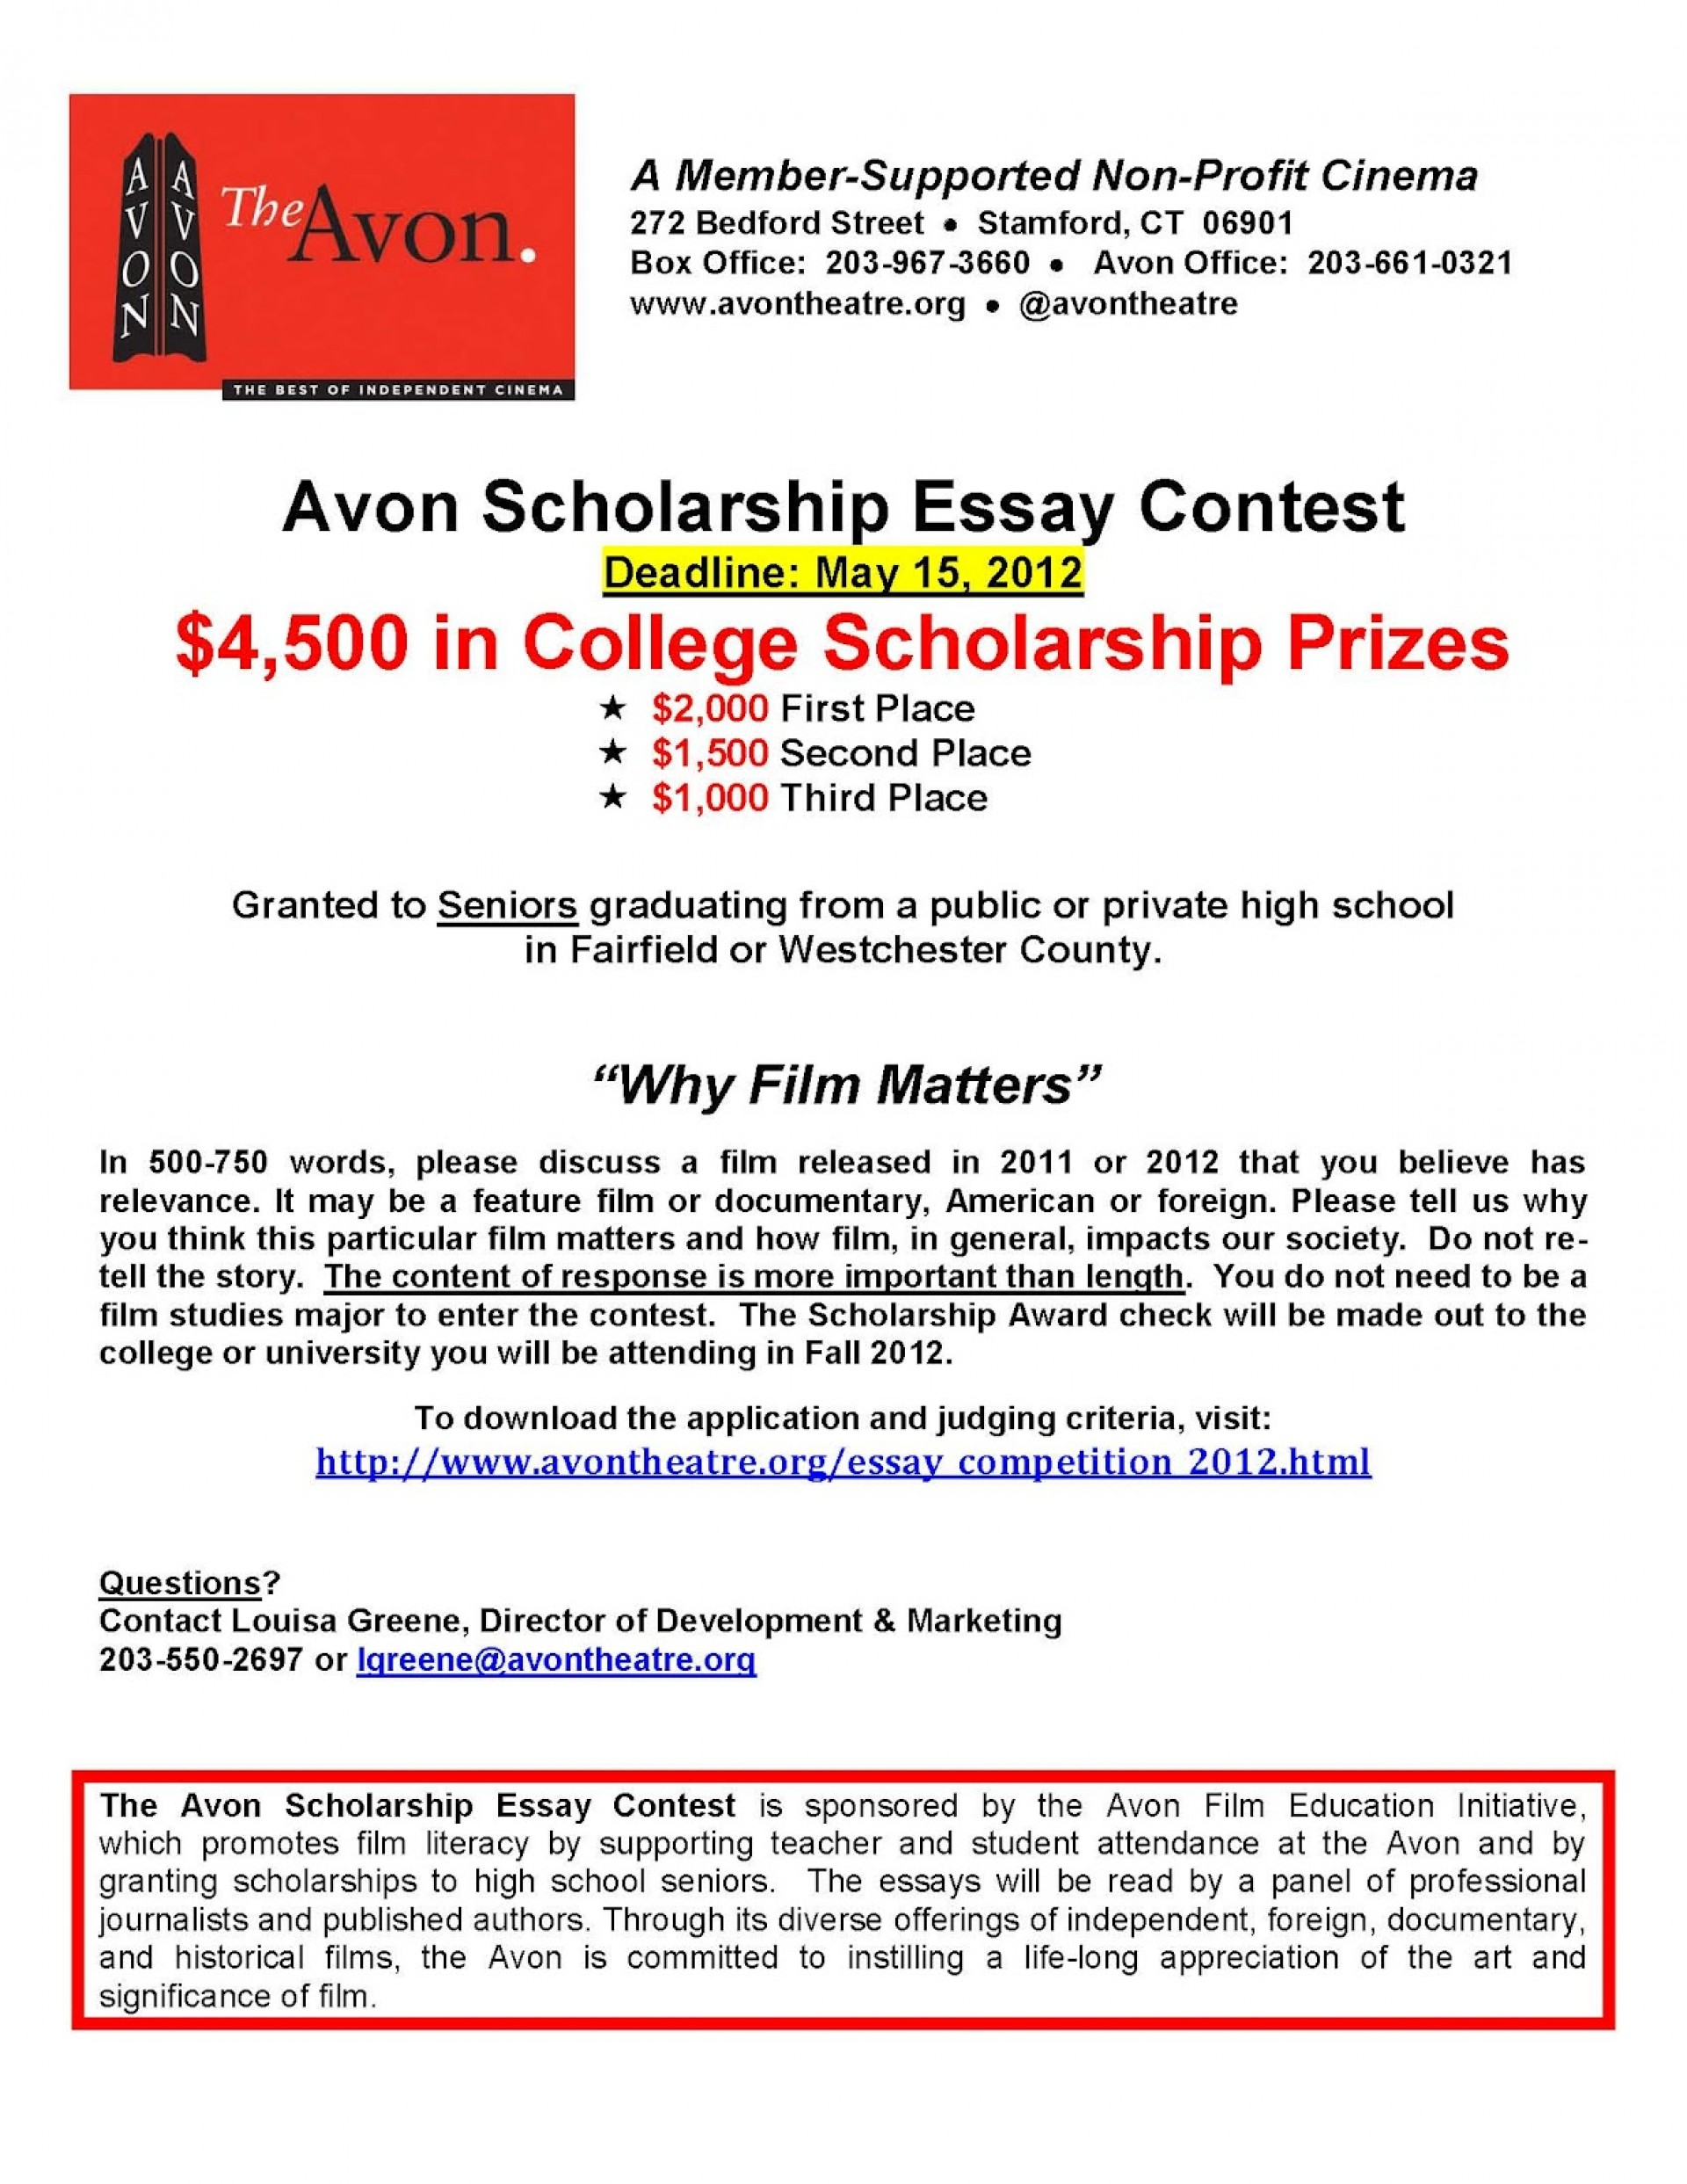 002 Essay Example No Scholarships College Scholarship Prowler Free For High School Seniors Avonscholarshipessaycontest2012 In Texas California Class Of Short Exceptional December 2018 Undergraduates 1920